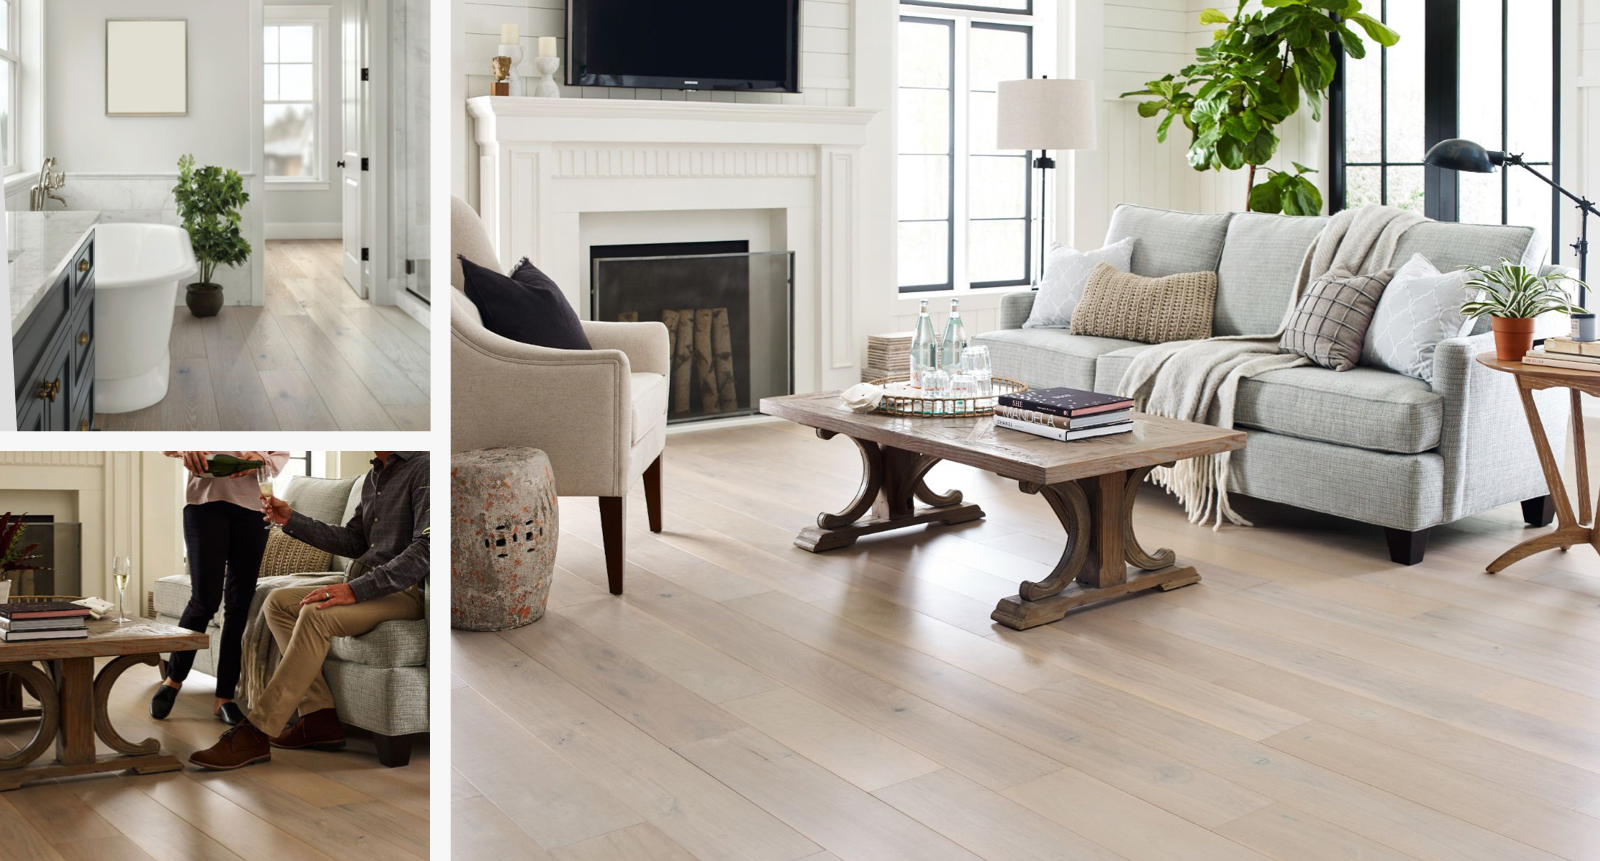 Floorte waterproof hardwood flooring for your home | Flooring By Design NC